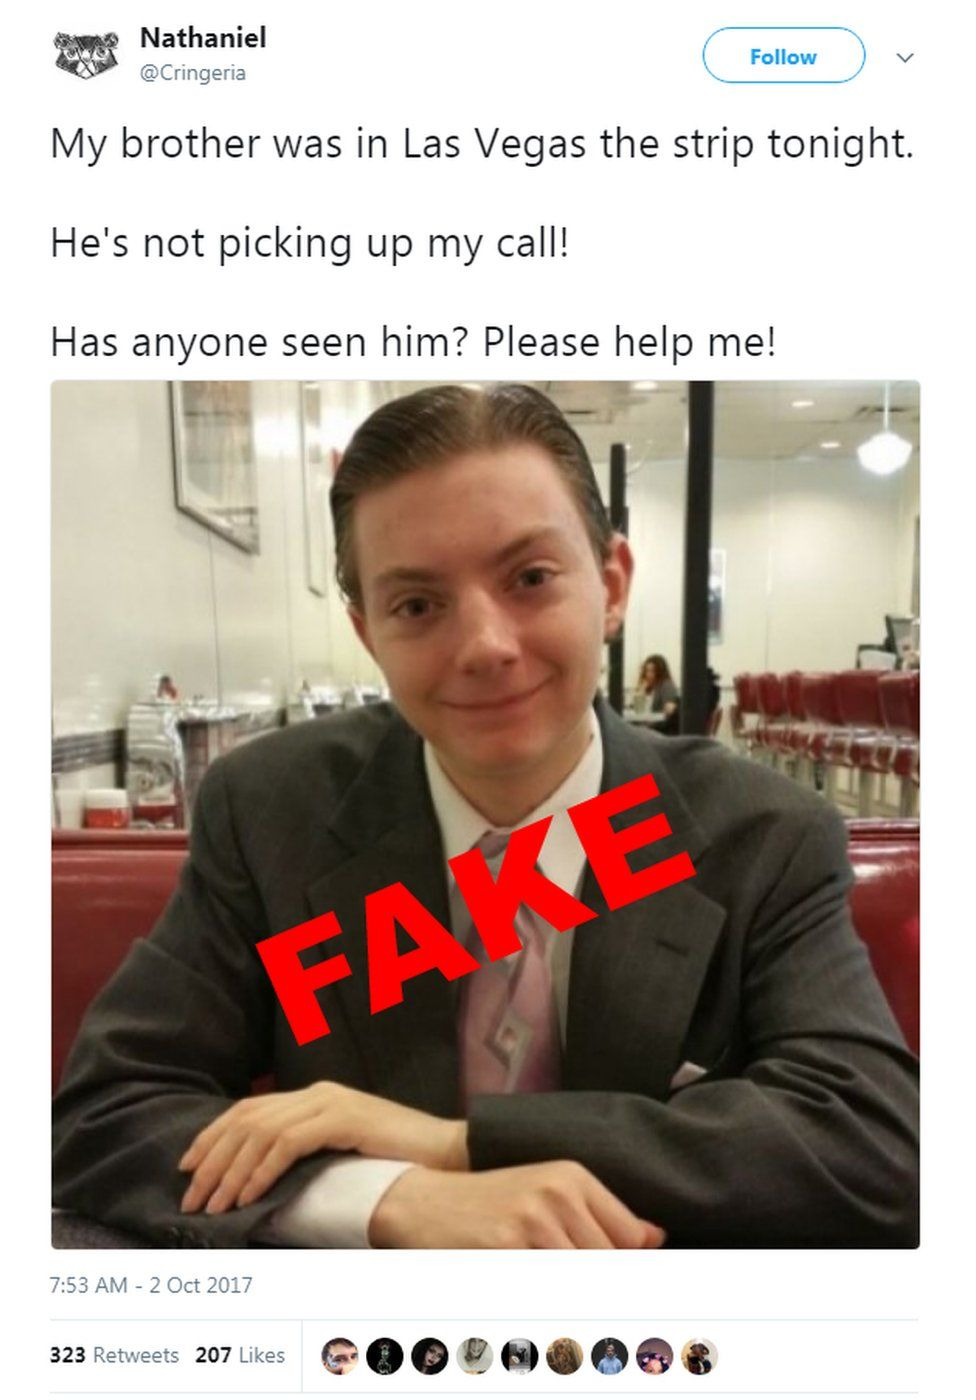 YouTuber 'TheReportOfTheWeek' was falsely named on social media as missing after the Las Vegas shooting